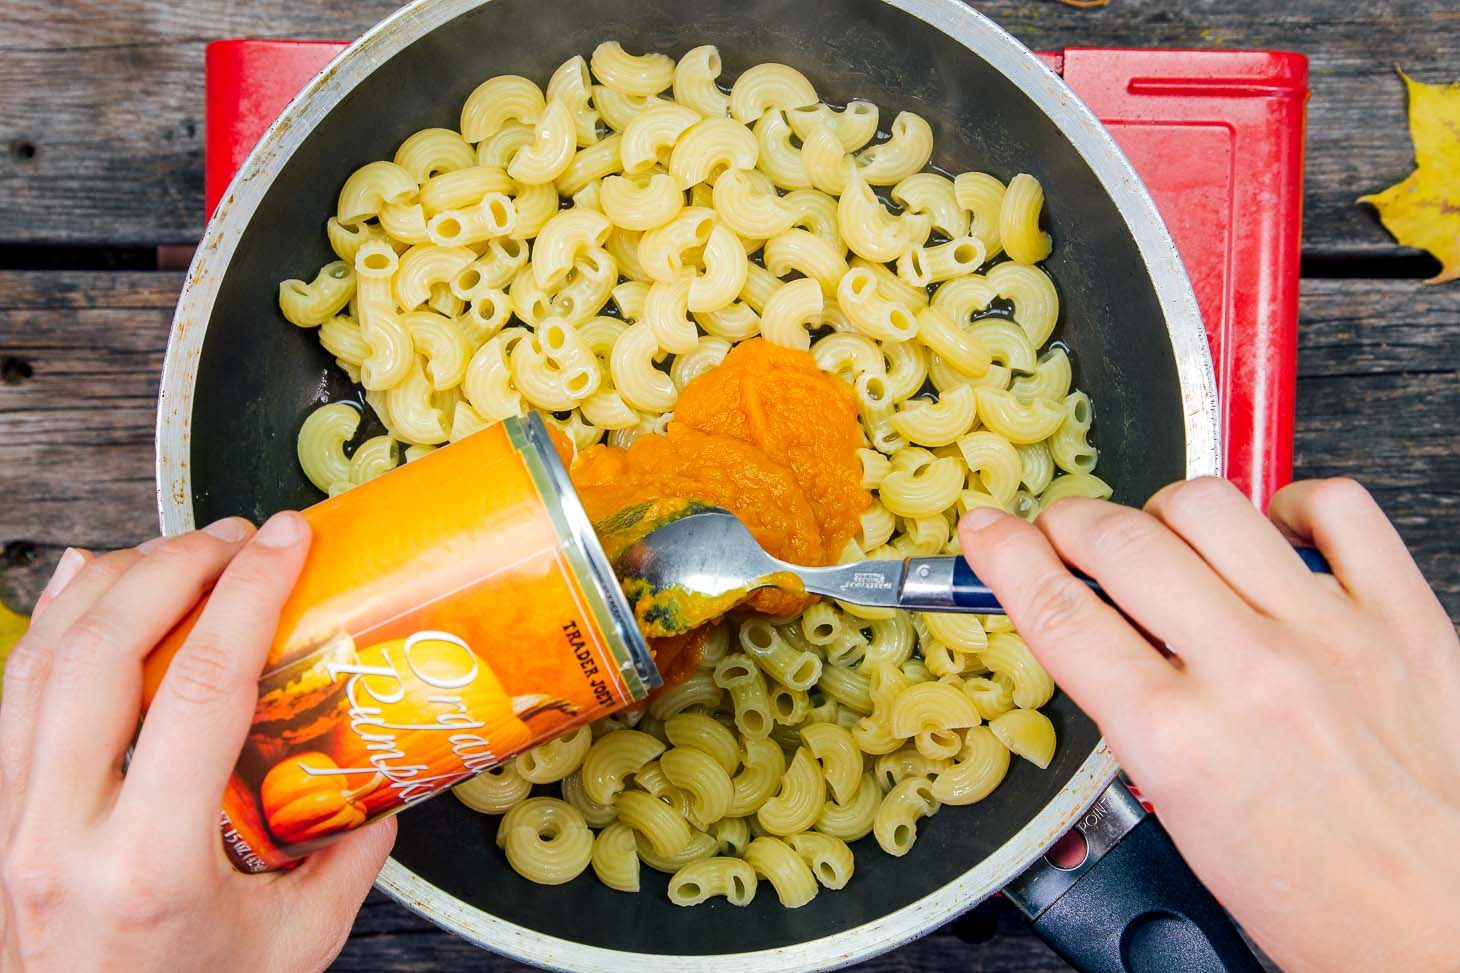 Scooping pumpkin puree into a skillet of noodles